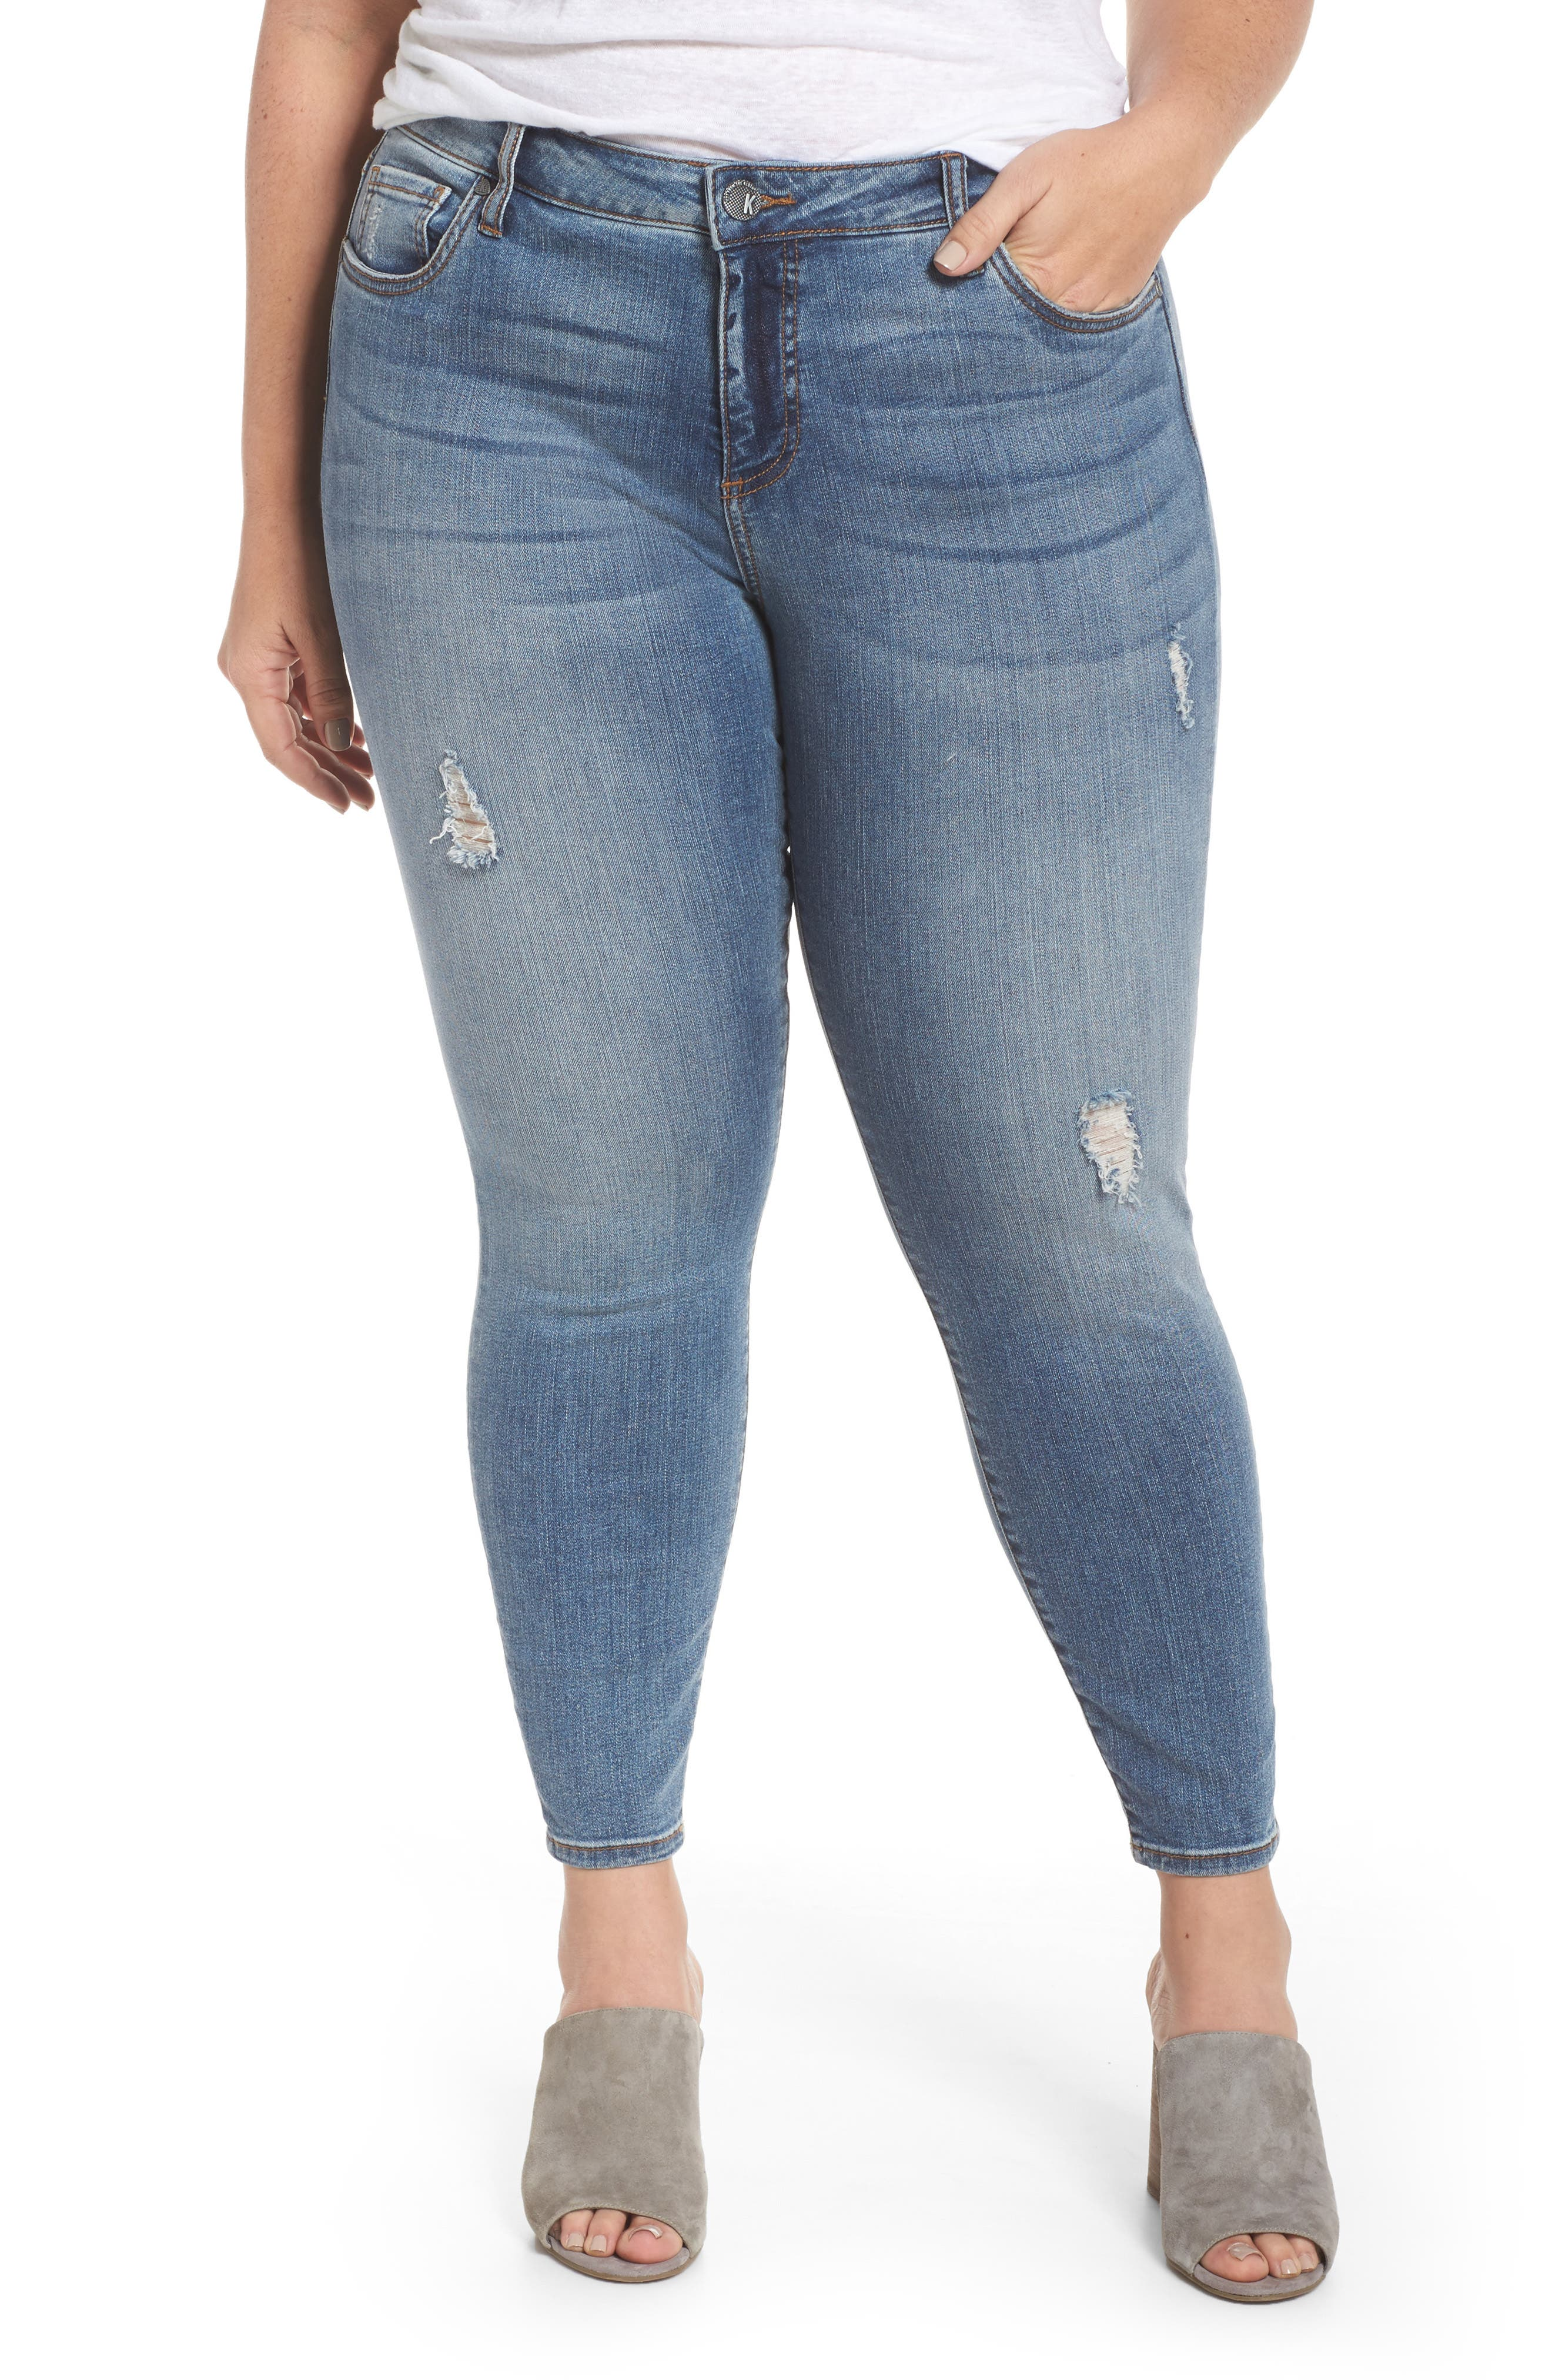 Plus Size Kut From The Kloth Donna High Waist Ankle Skinny Jeans, Grey